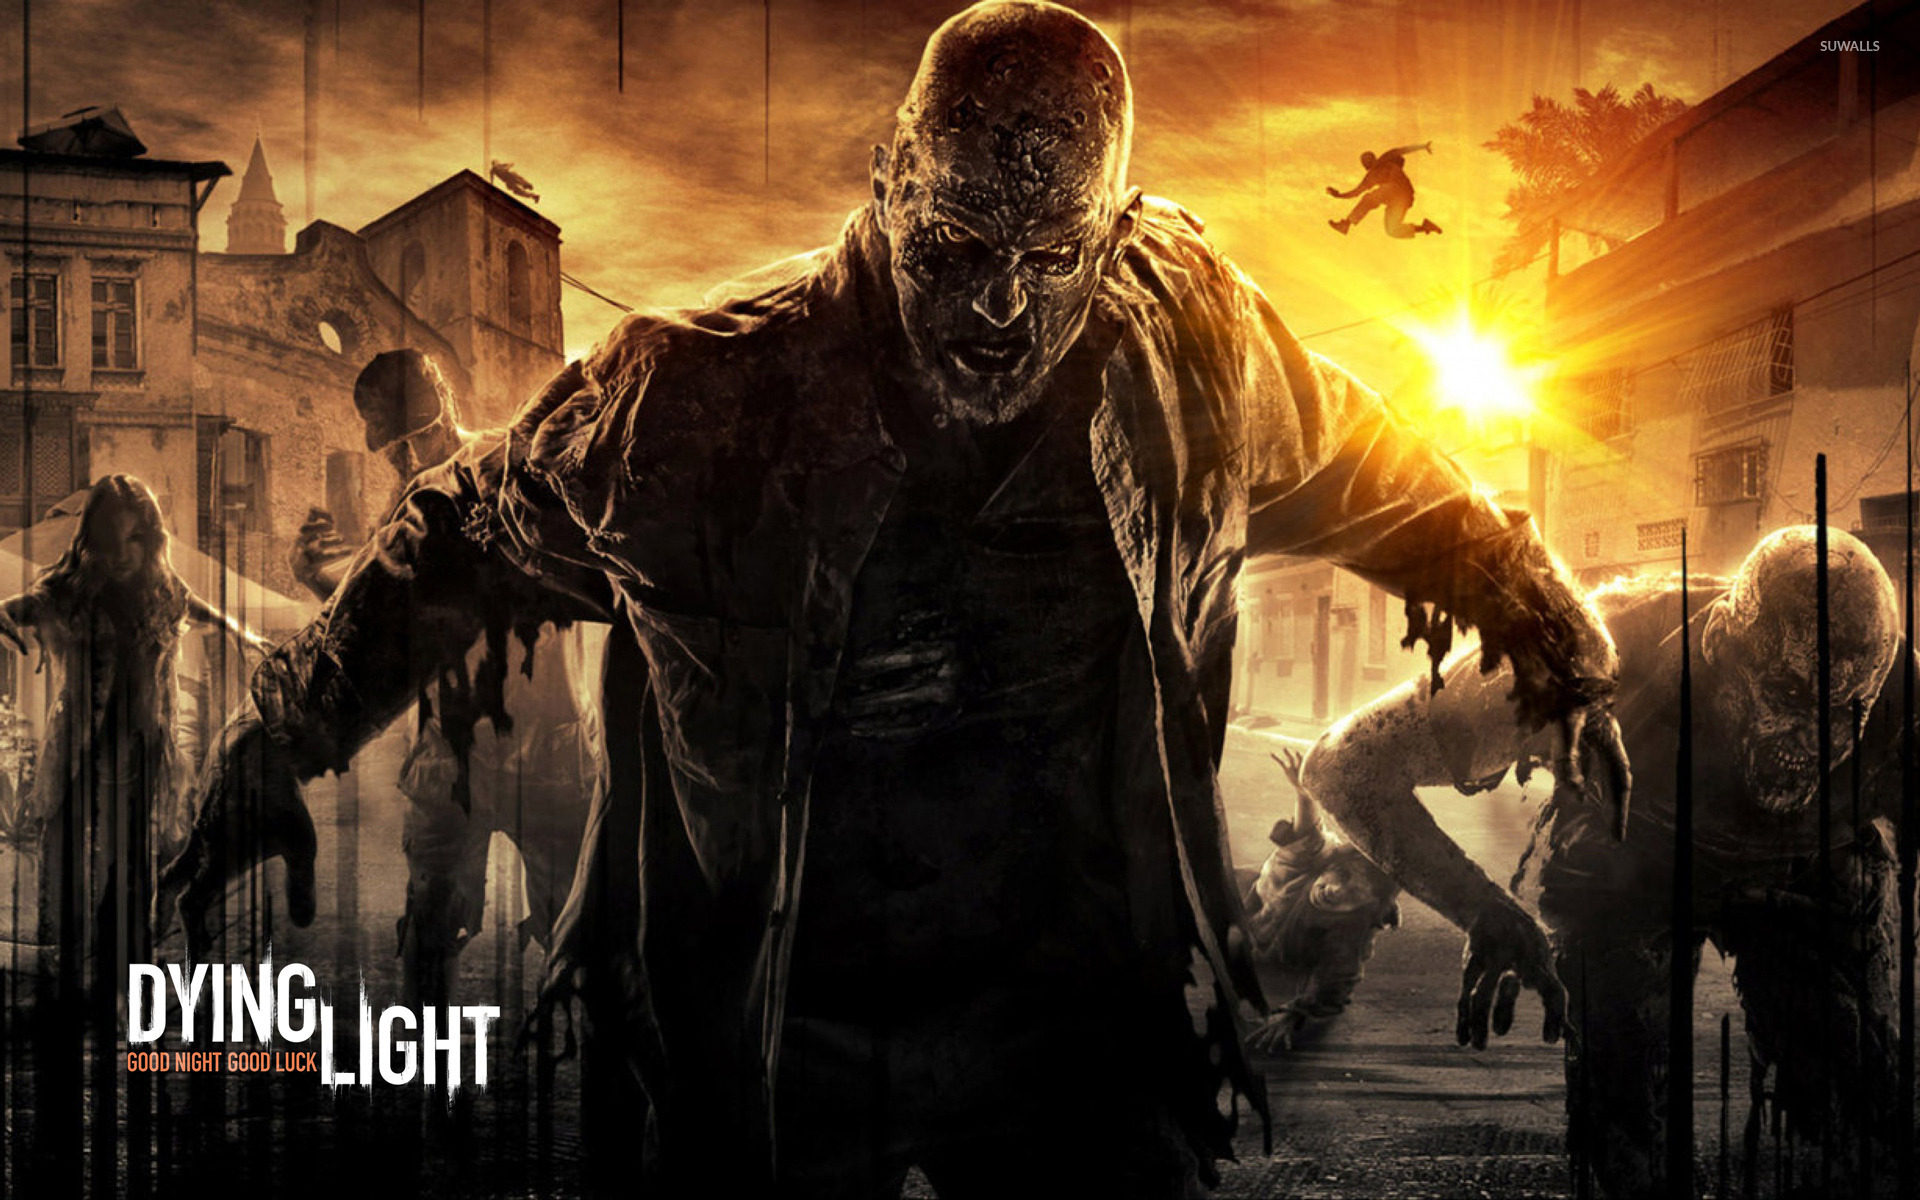 Dying Light 3 wallpaper Game wallpapers